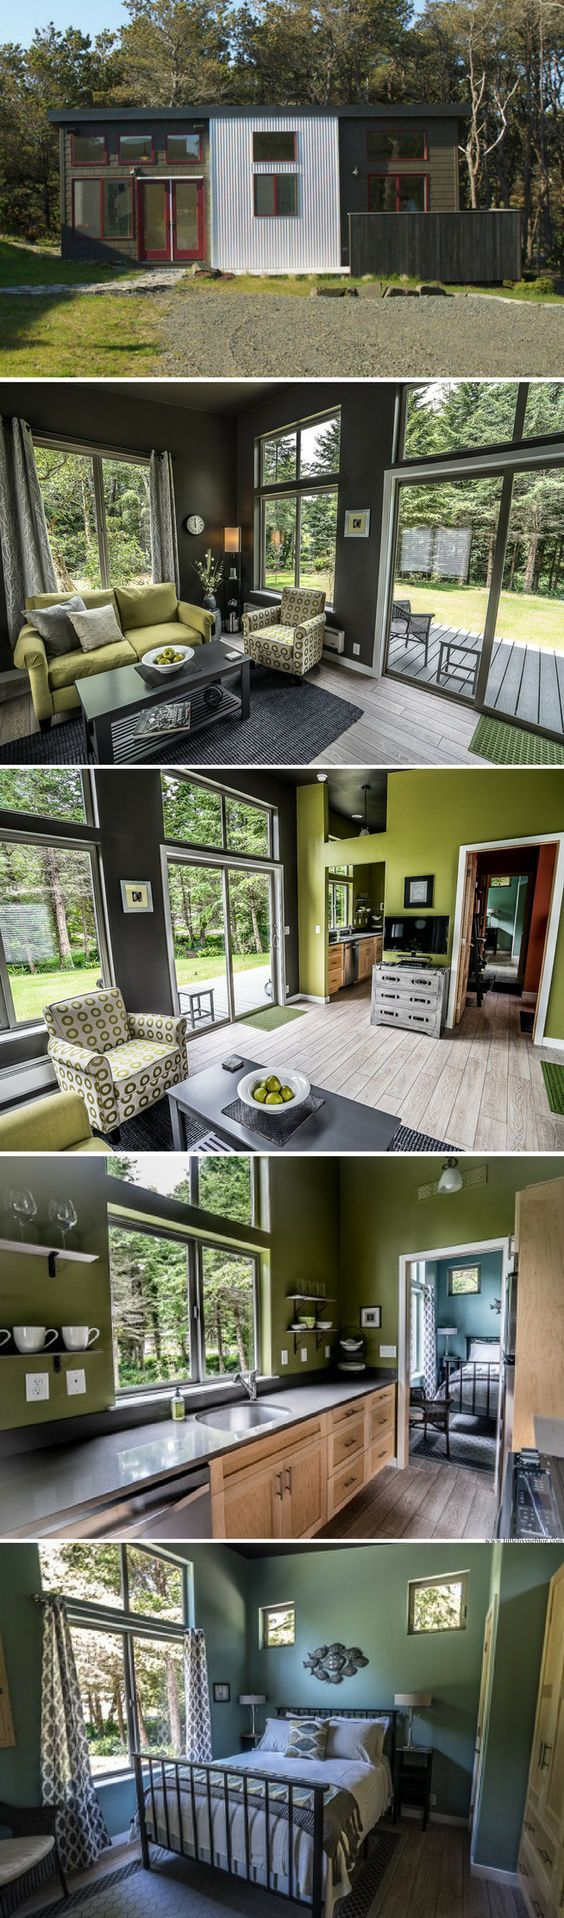 Inspiring 105 Impressive Tiny Houses That Maximize Function and Style https://decoratio.co/2017/03/105-impressive-tiny-houses-maximize-function-style/